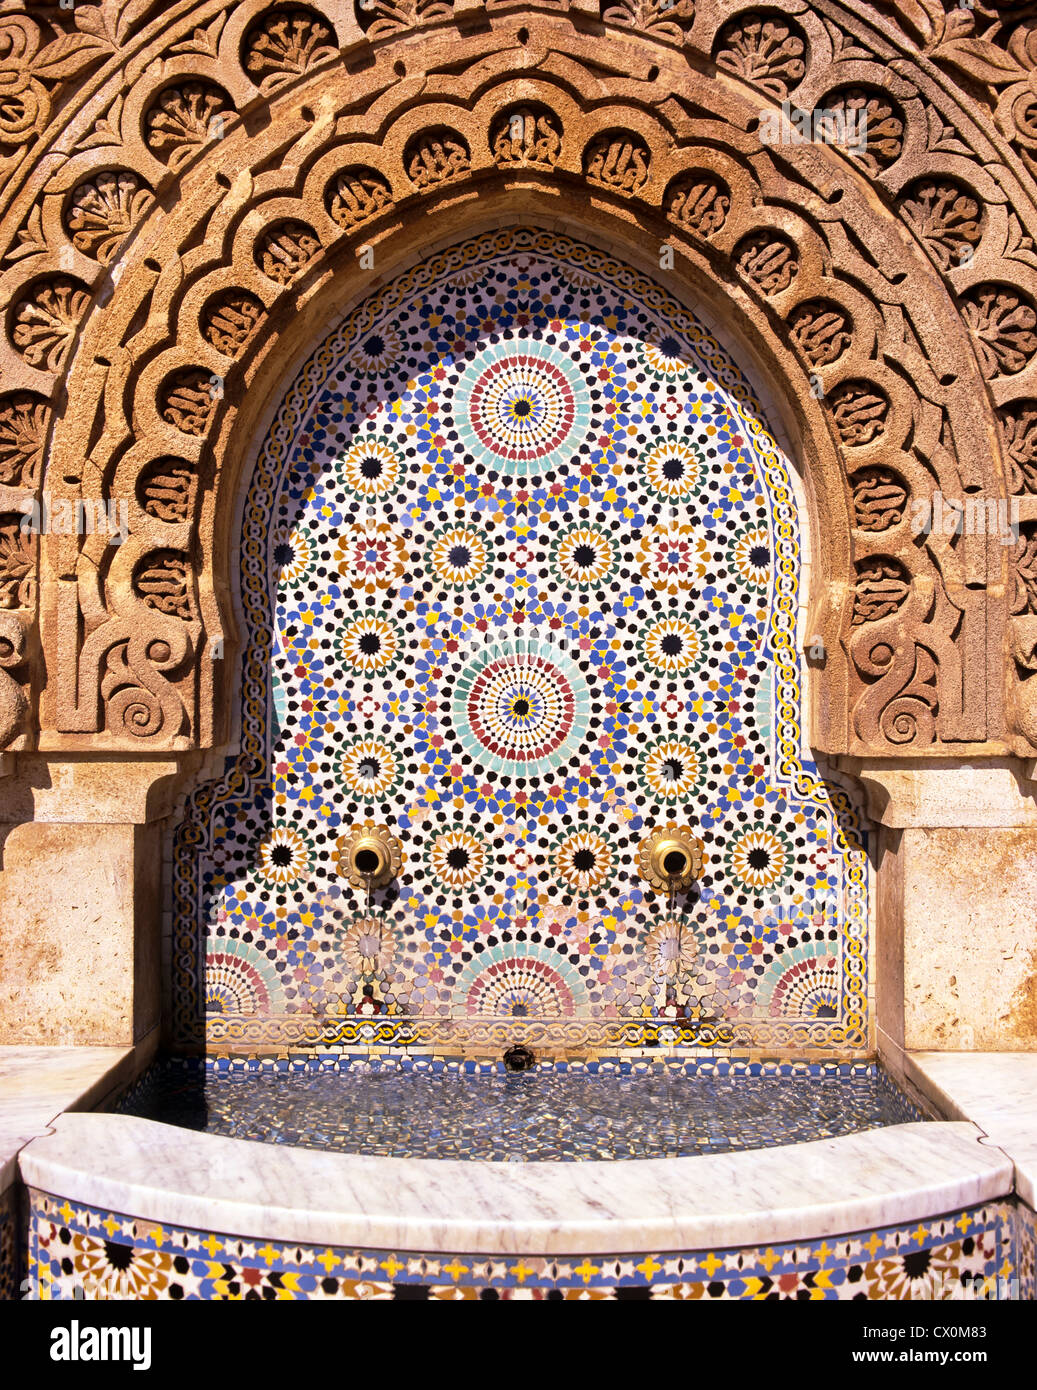 8186. Drinking fountain, Fes, Morocco - Stock Image